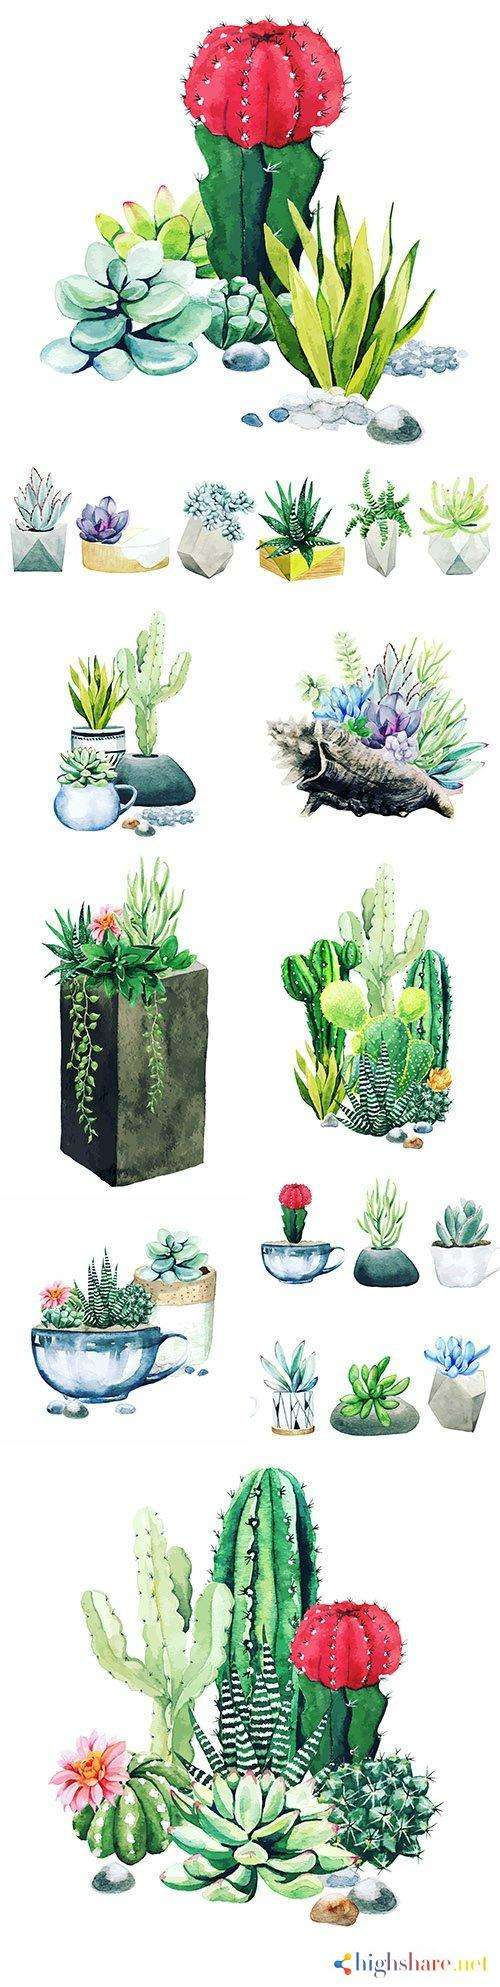 cacti and succulents composition from potted watercolor plants 5f41e62fddce9 - Cacti and succulents composition from potted watercolor plants